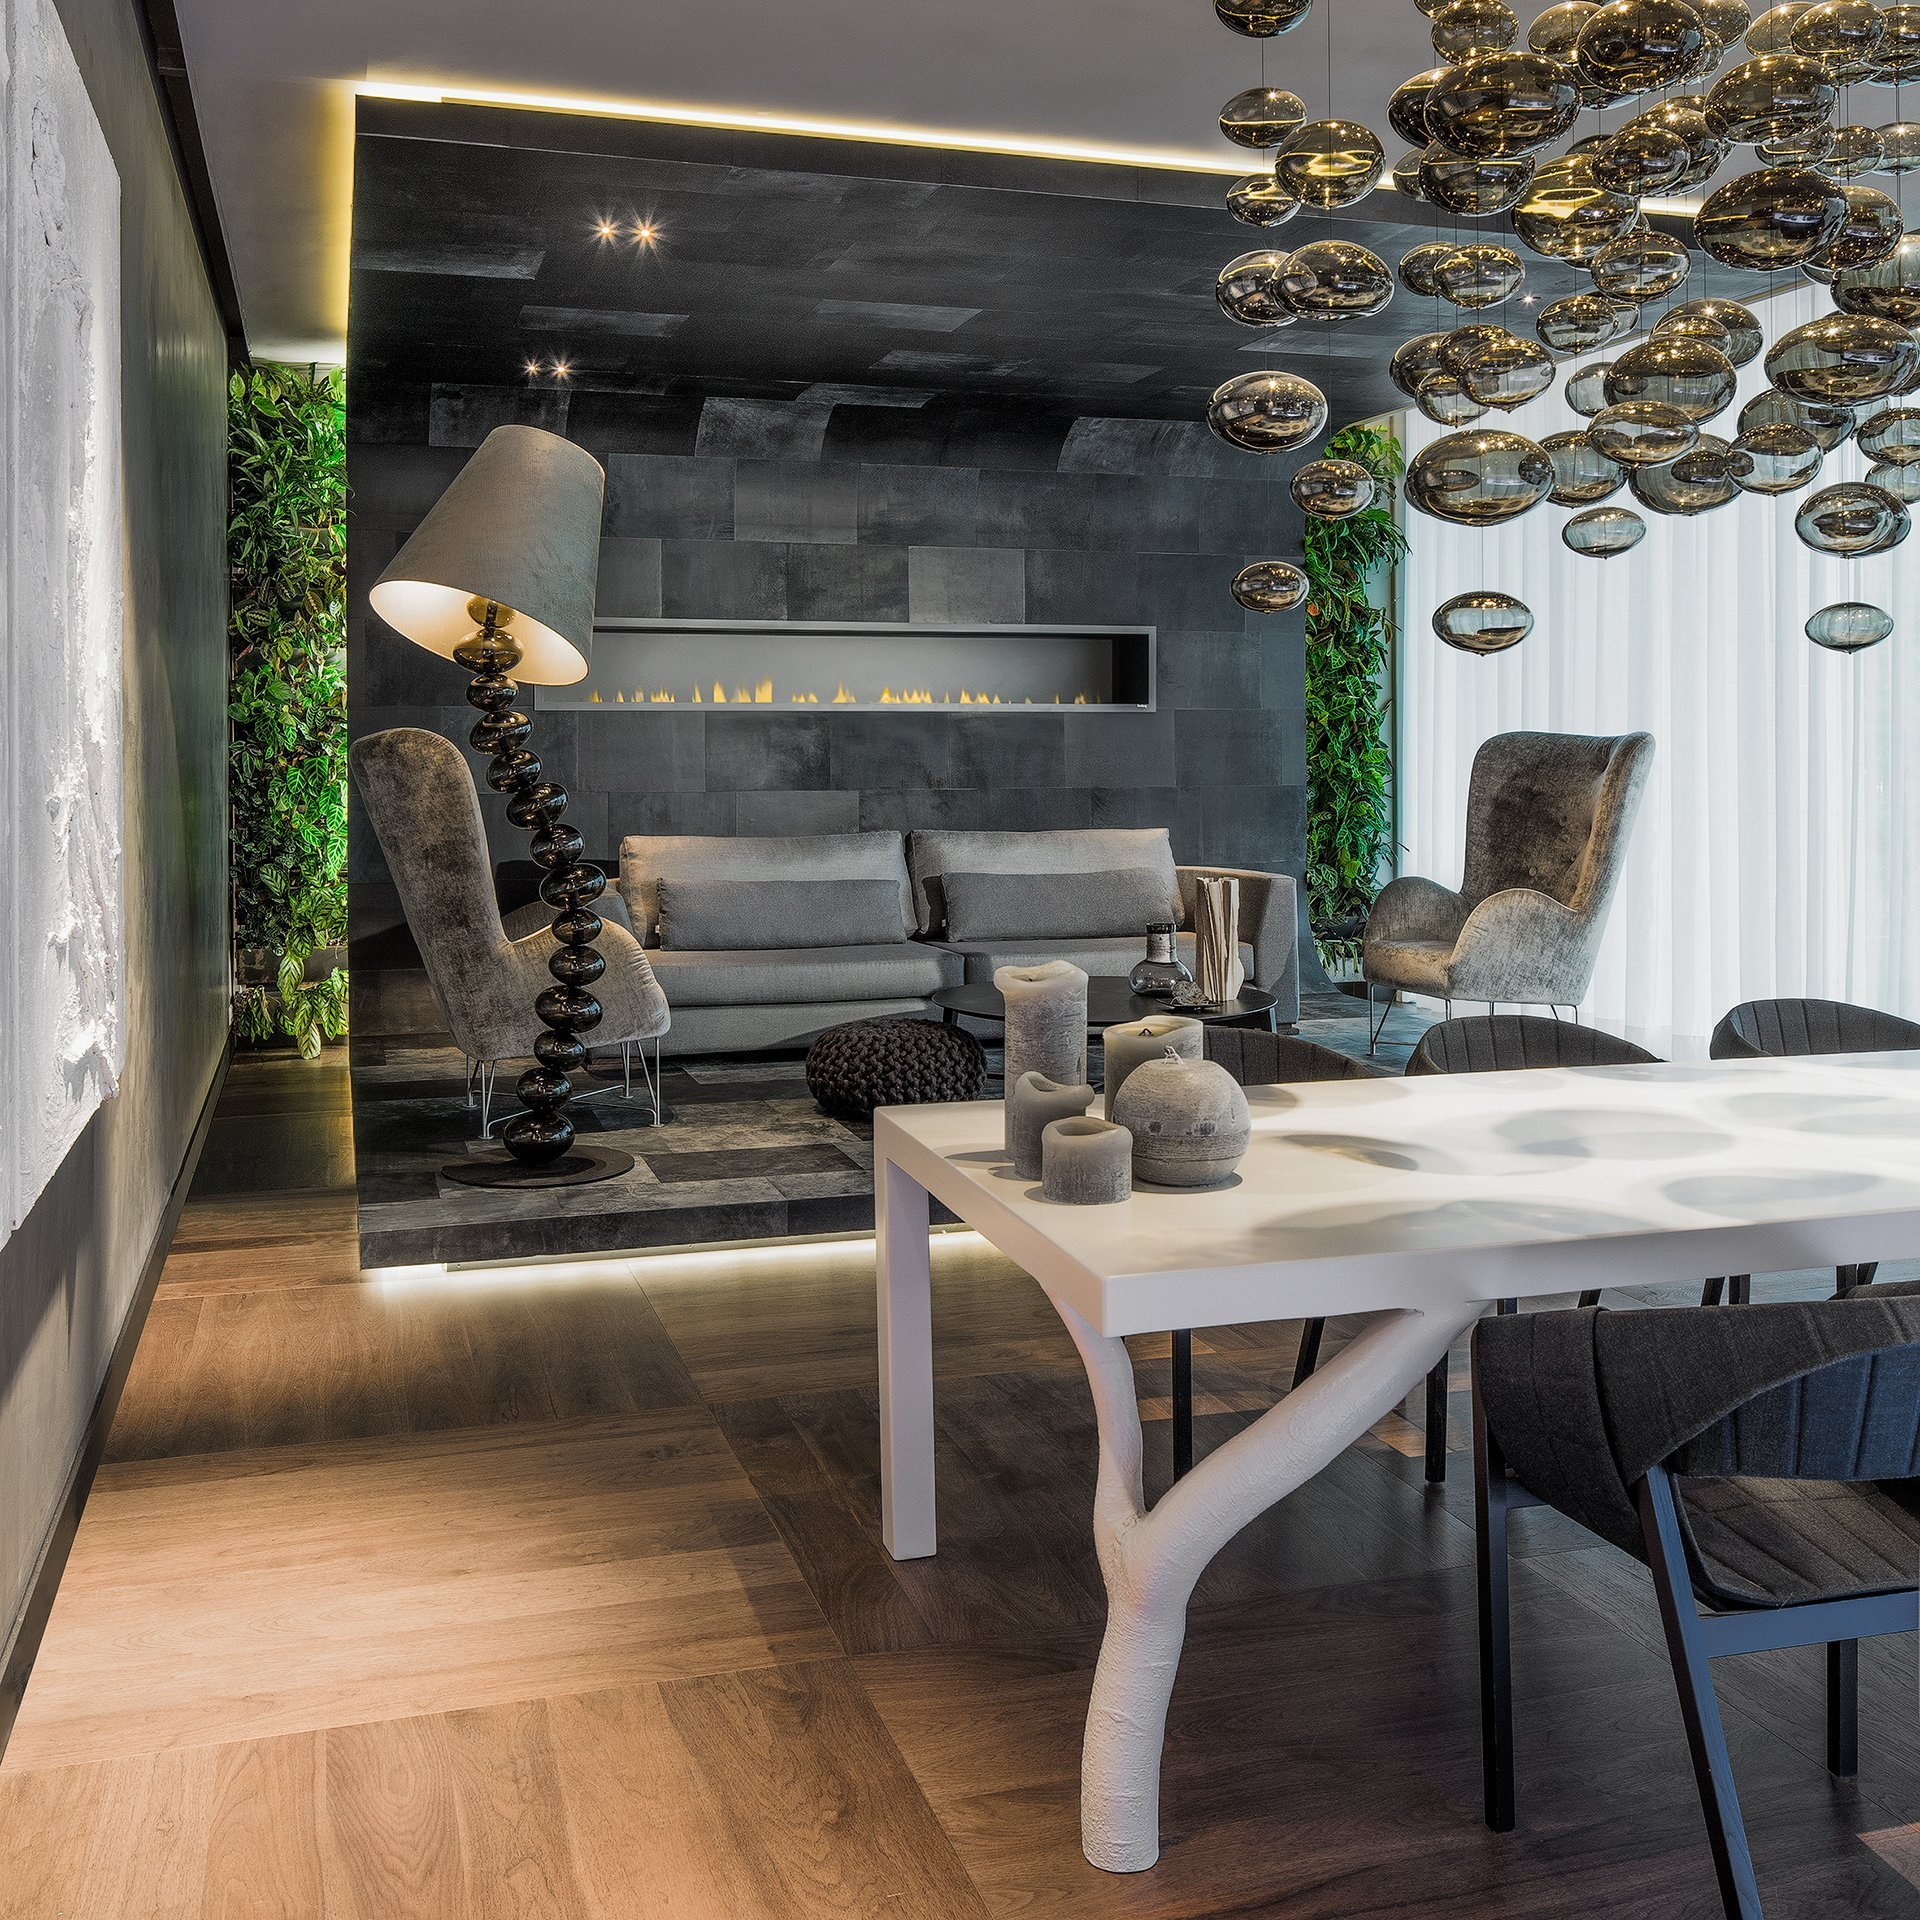 Seating area with Alphenberg leather upholstery set in front of a living wall, with a white design conference table in the foreground.